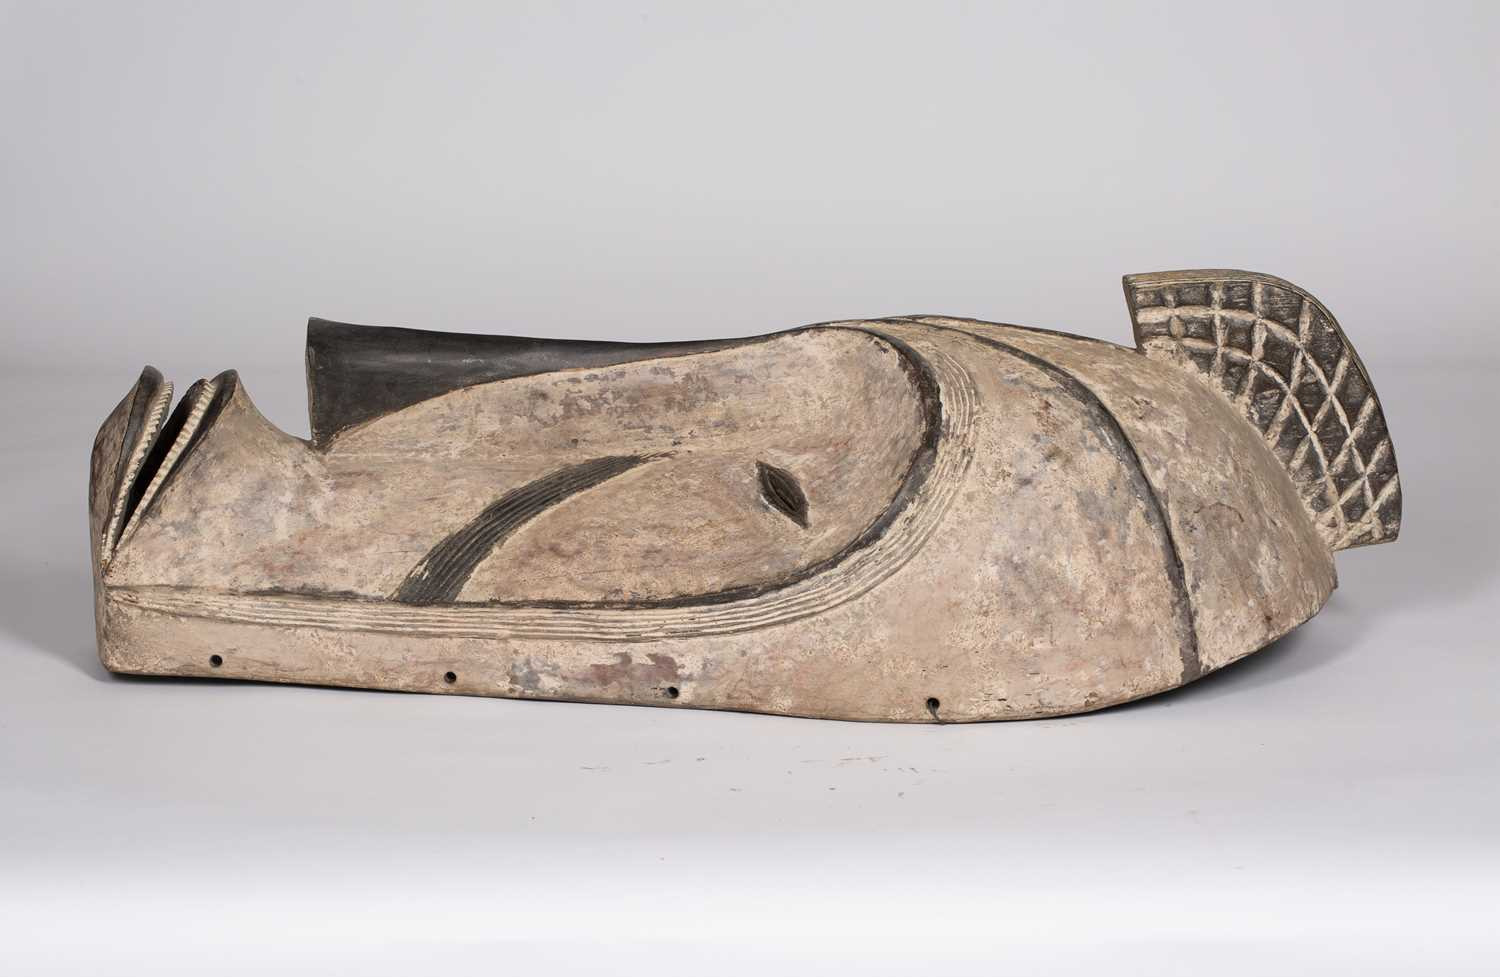 A Fang mask, Gabon, carved wood with incised line marks with black and white pigments, 74cm high - Image 4 of 5